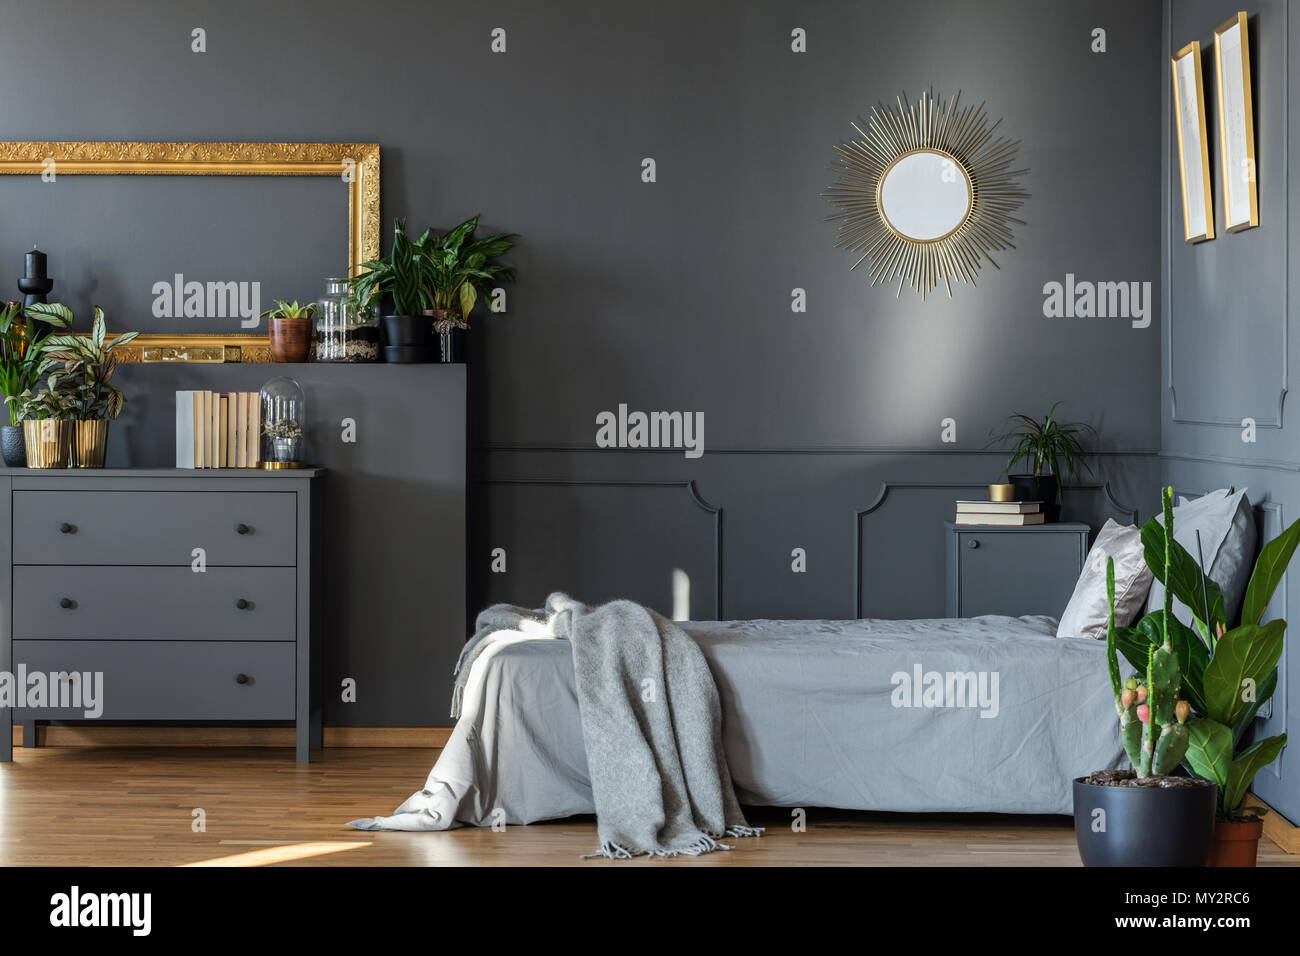 Decorative Mirror Hanging On The Wall In Dark Grey Bedroom Interior With Fresh Plants And Books On Wooden Cupboard Stock Photo Alamy